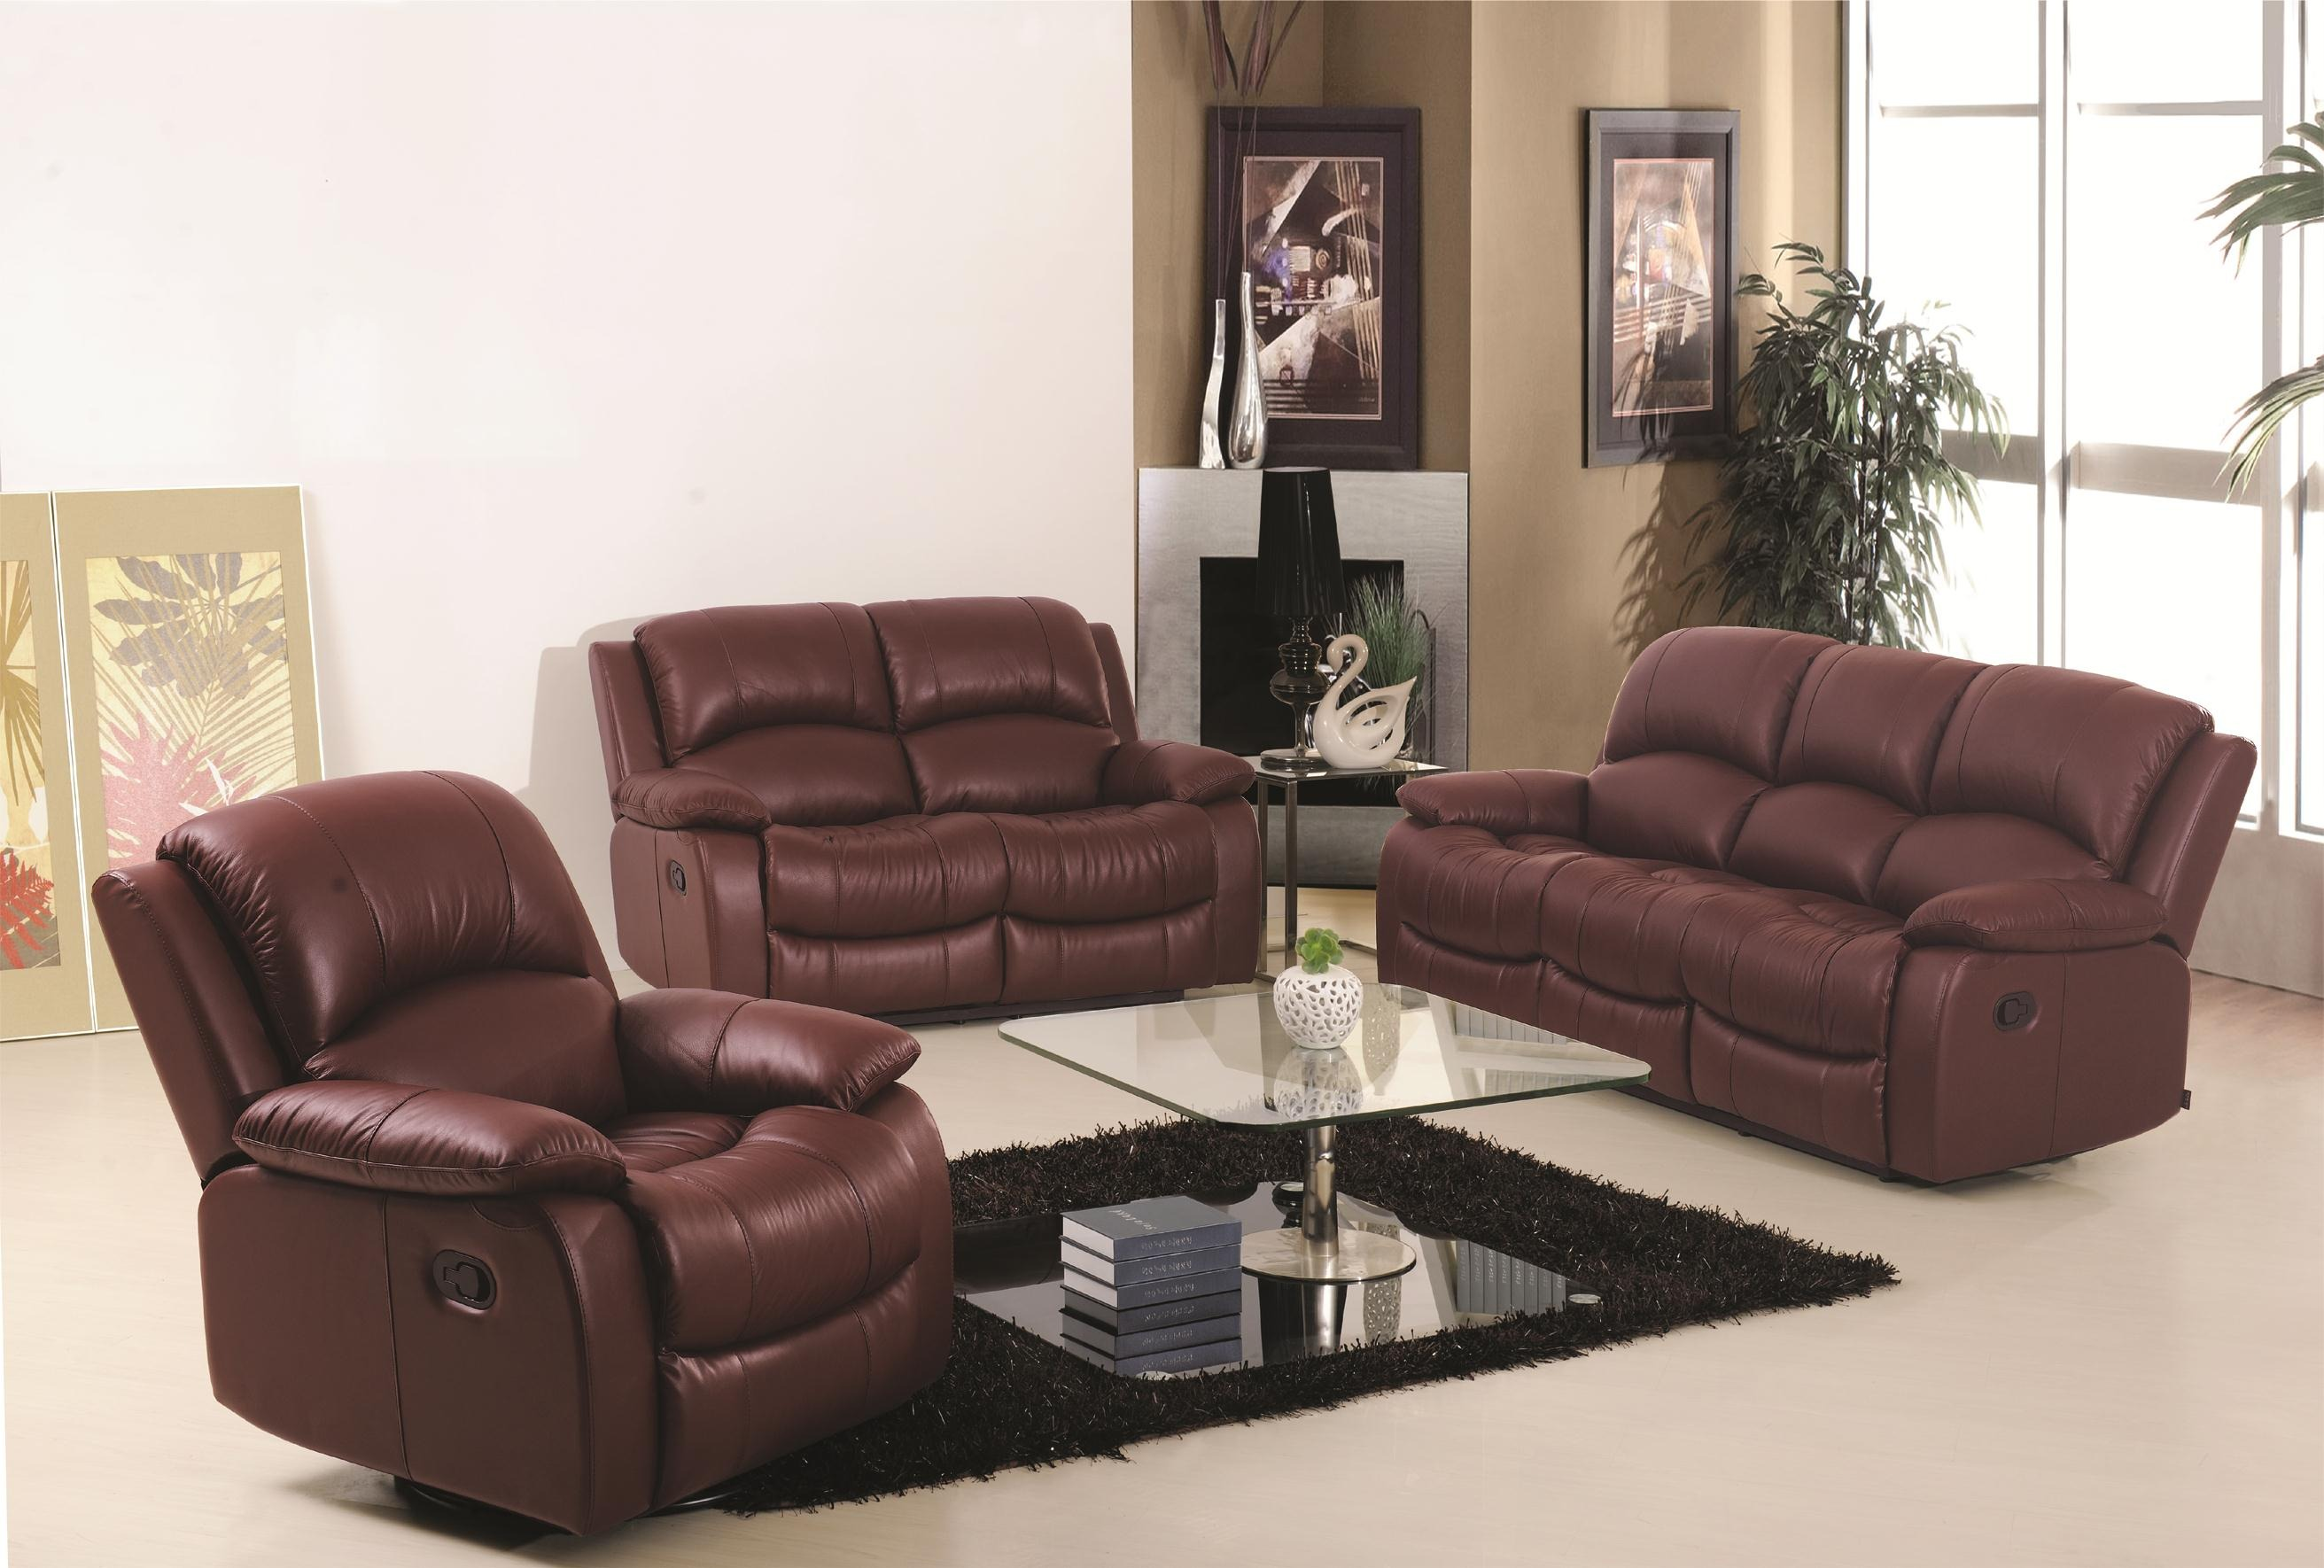 buy leather furniture